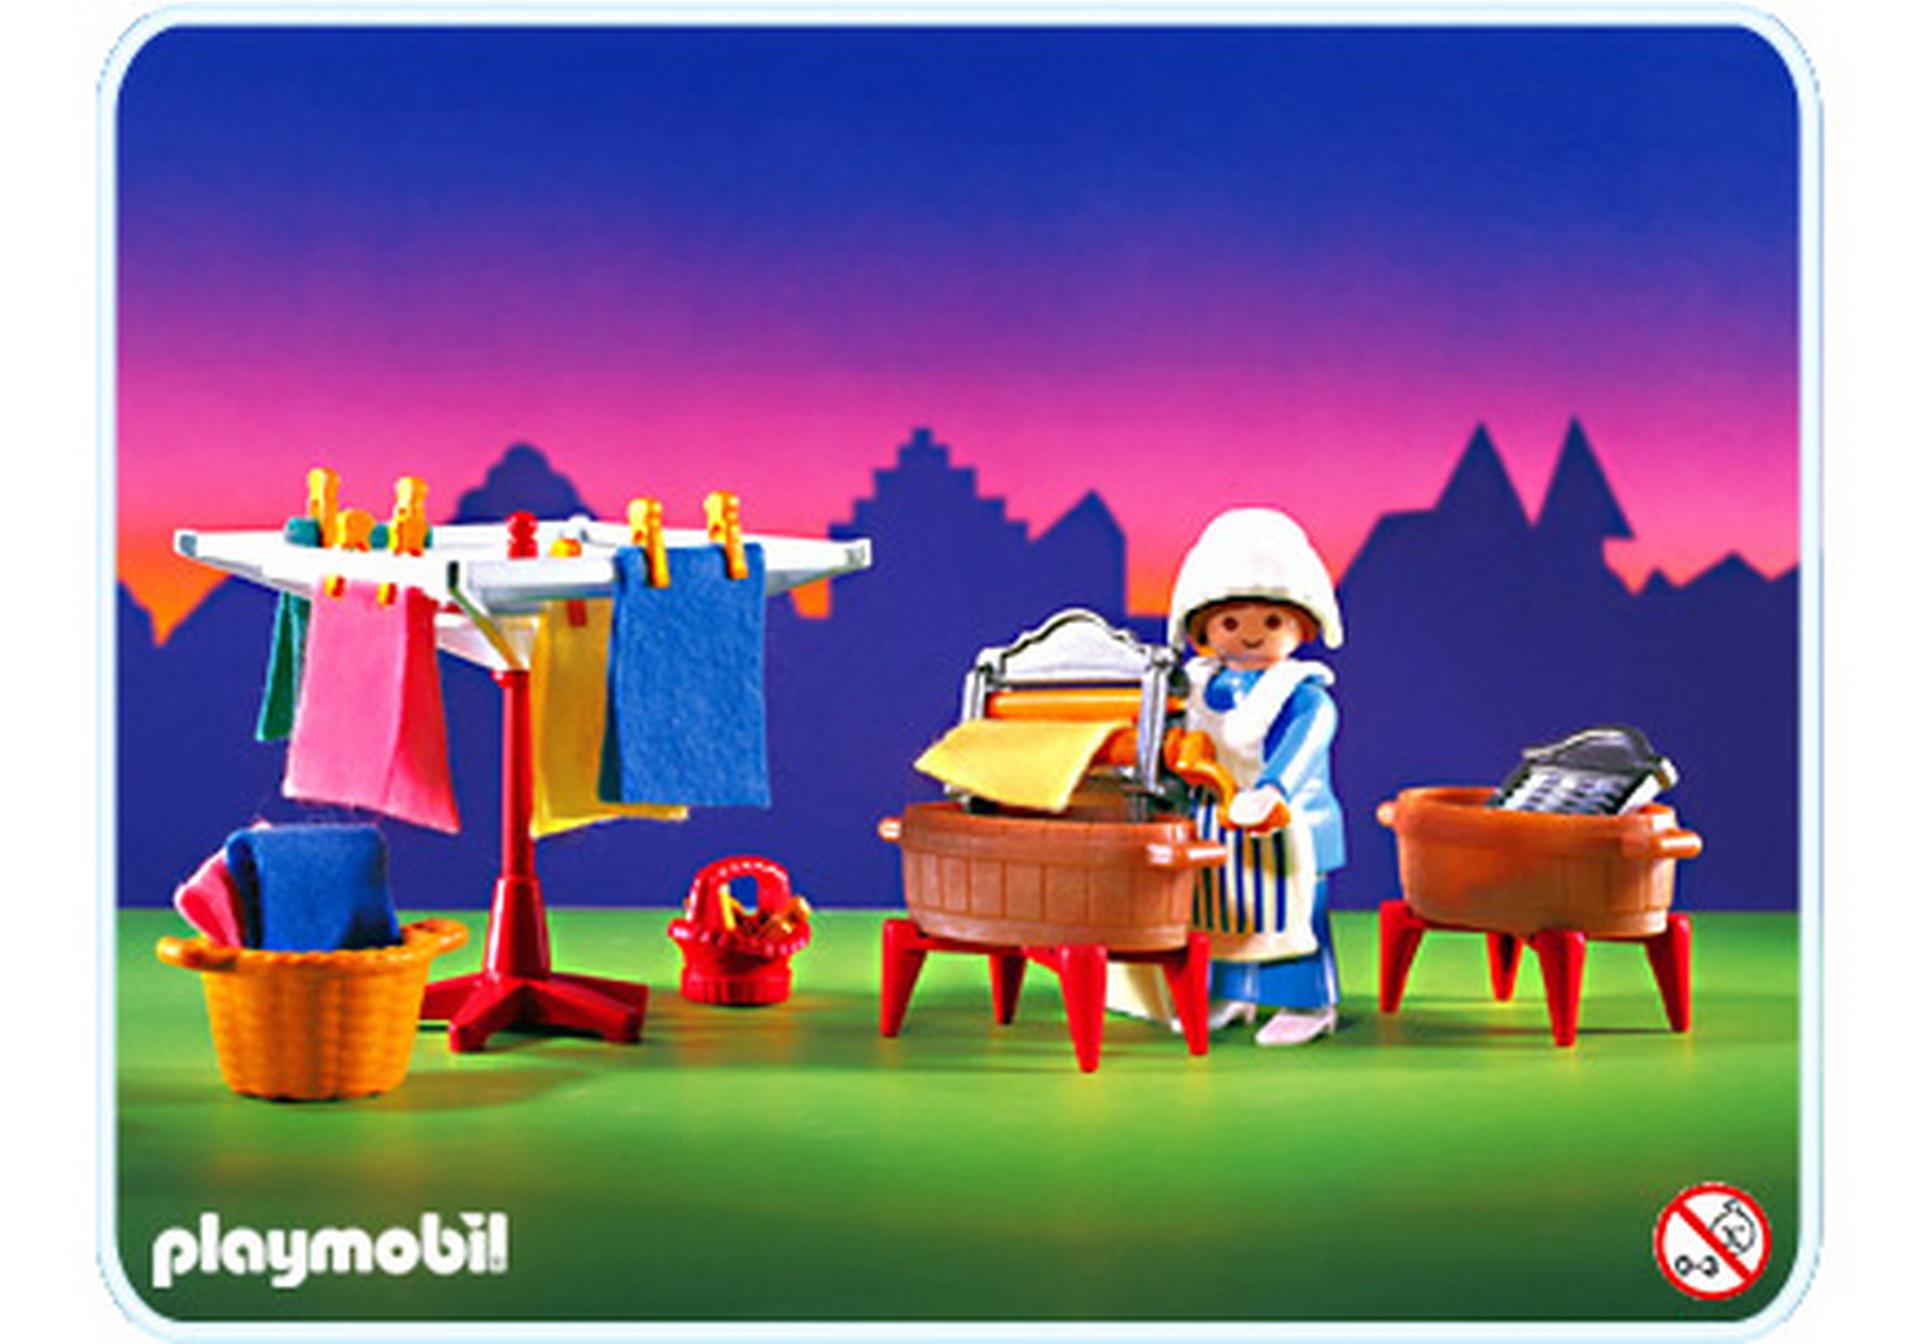 Ling re buanderie 5407 a playmobil france for Playmobil buanderie